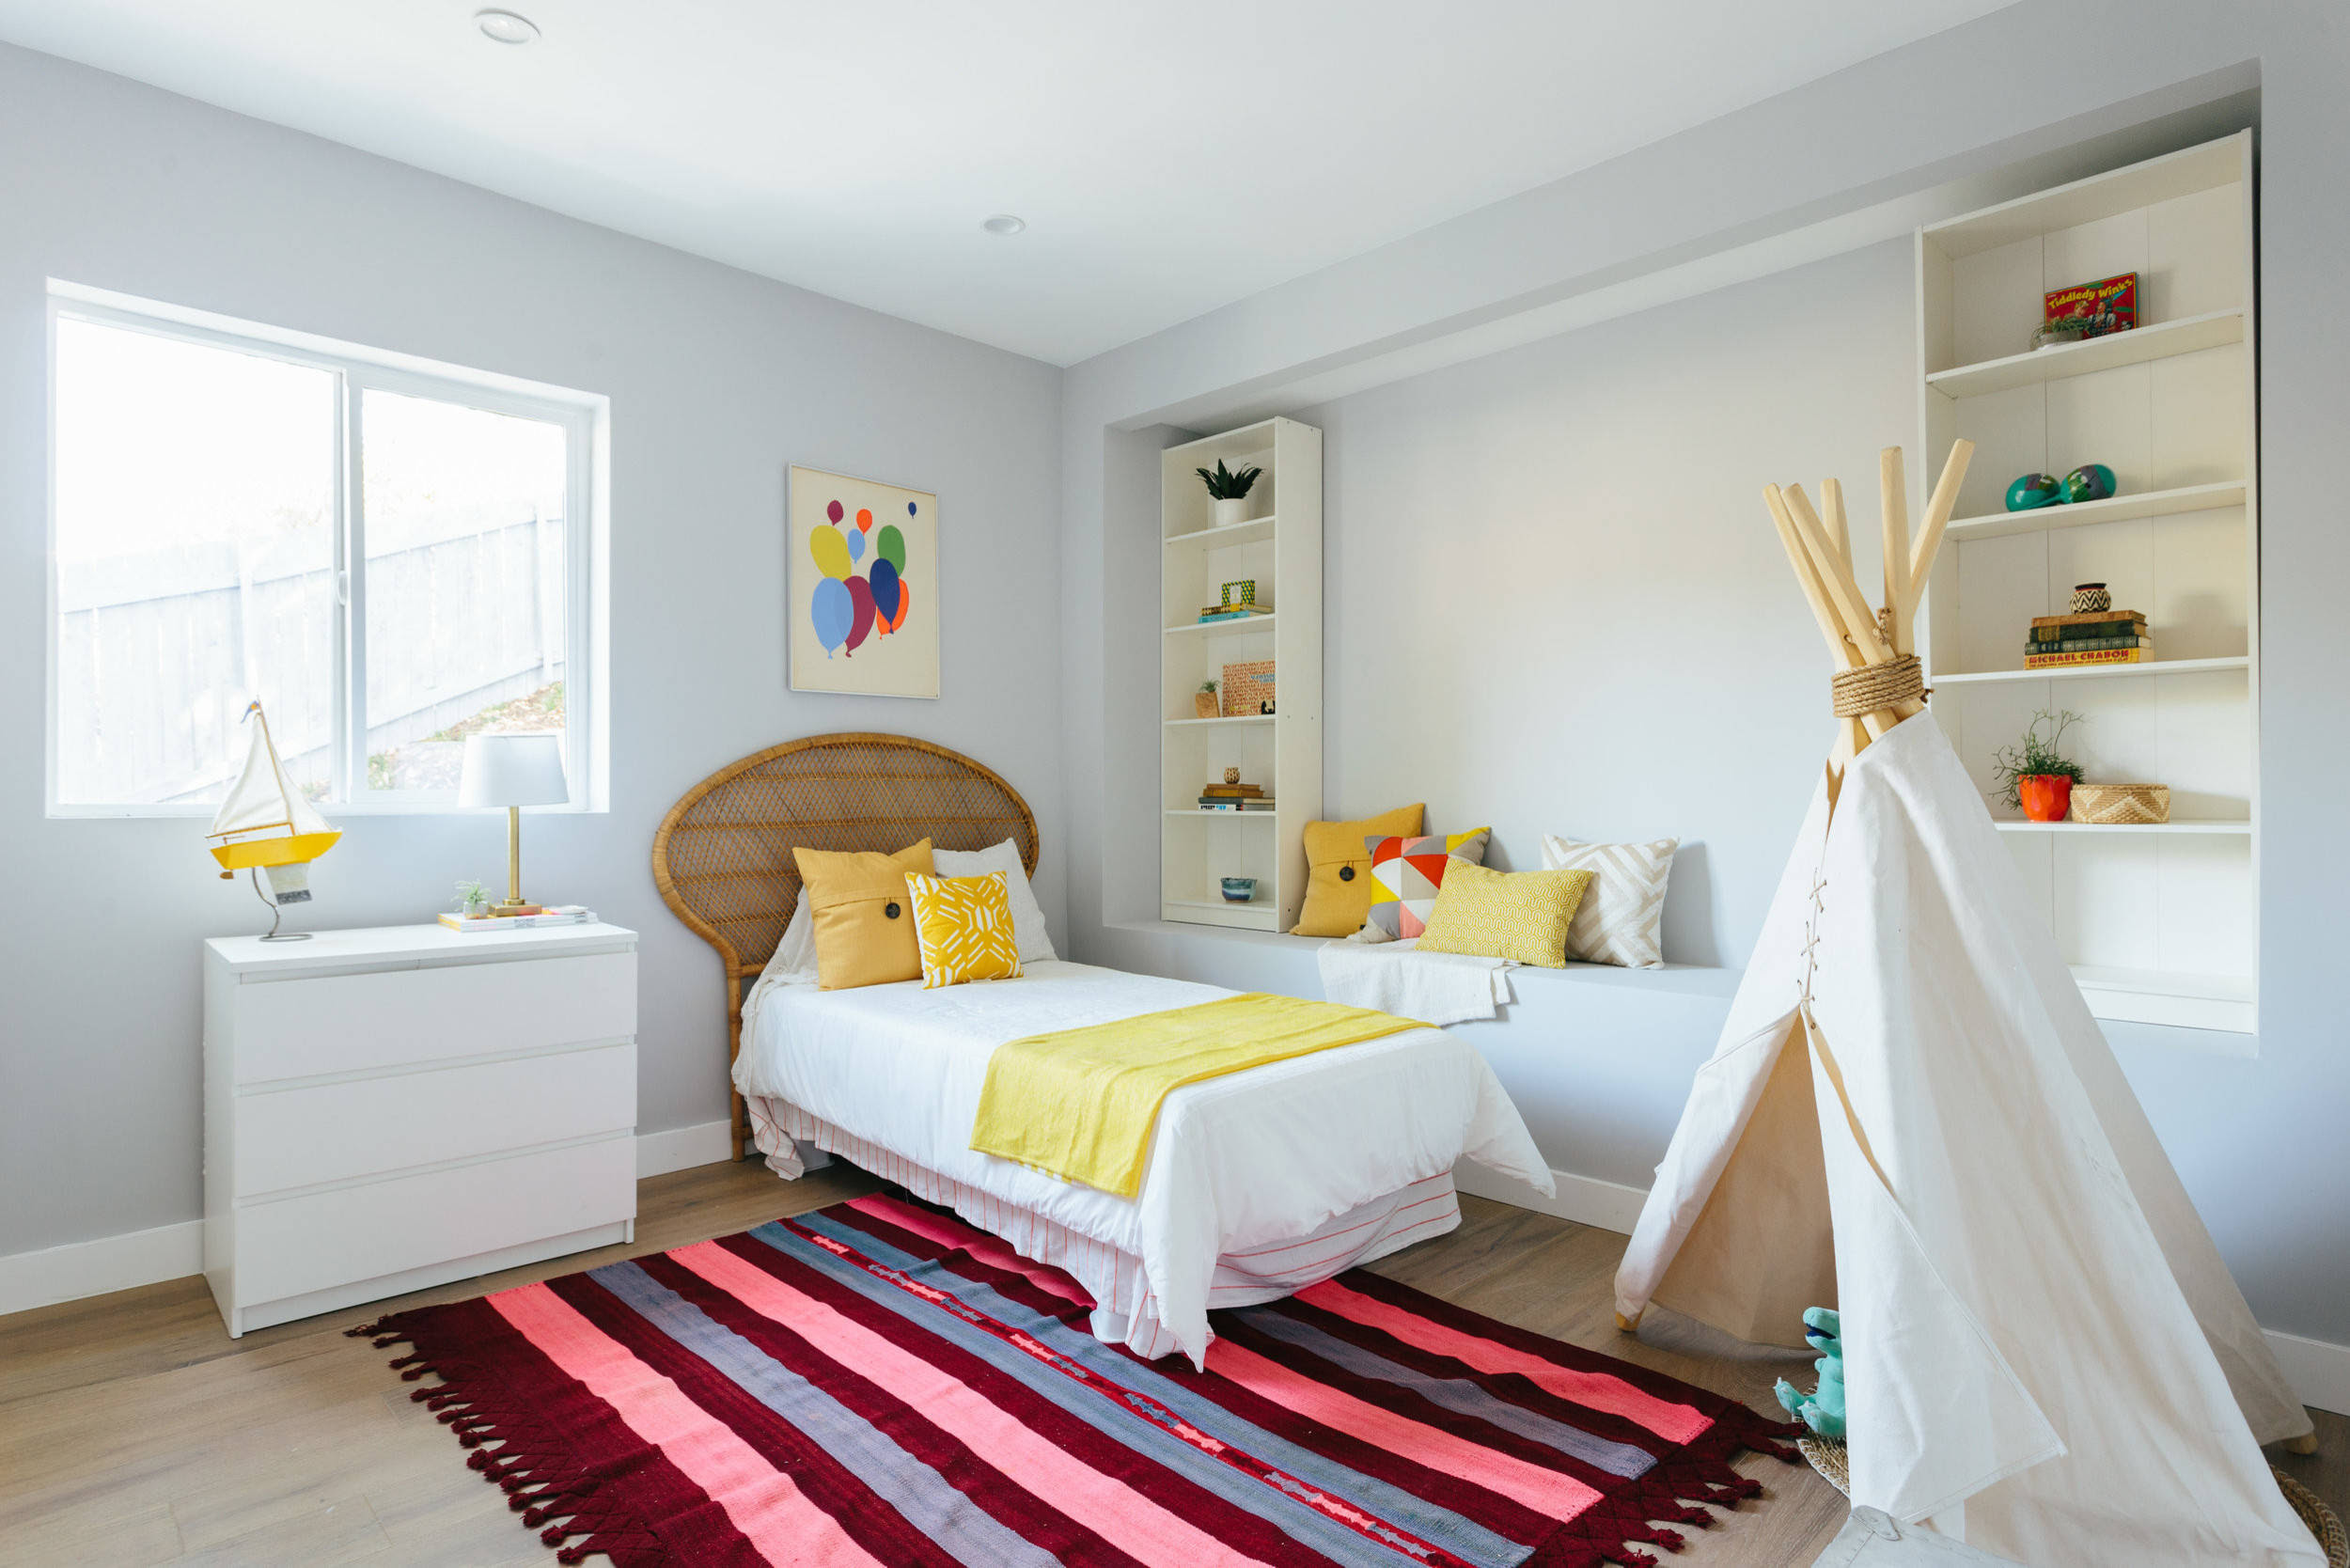 17 Cool Junior Room Design Ideas | DigsDigs